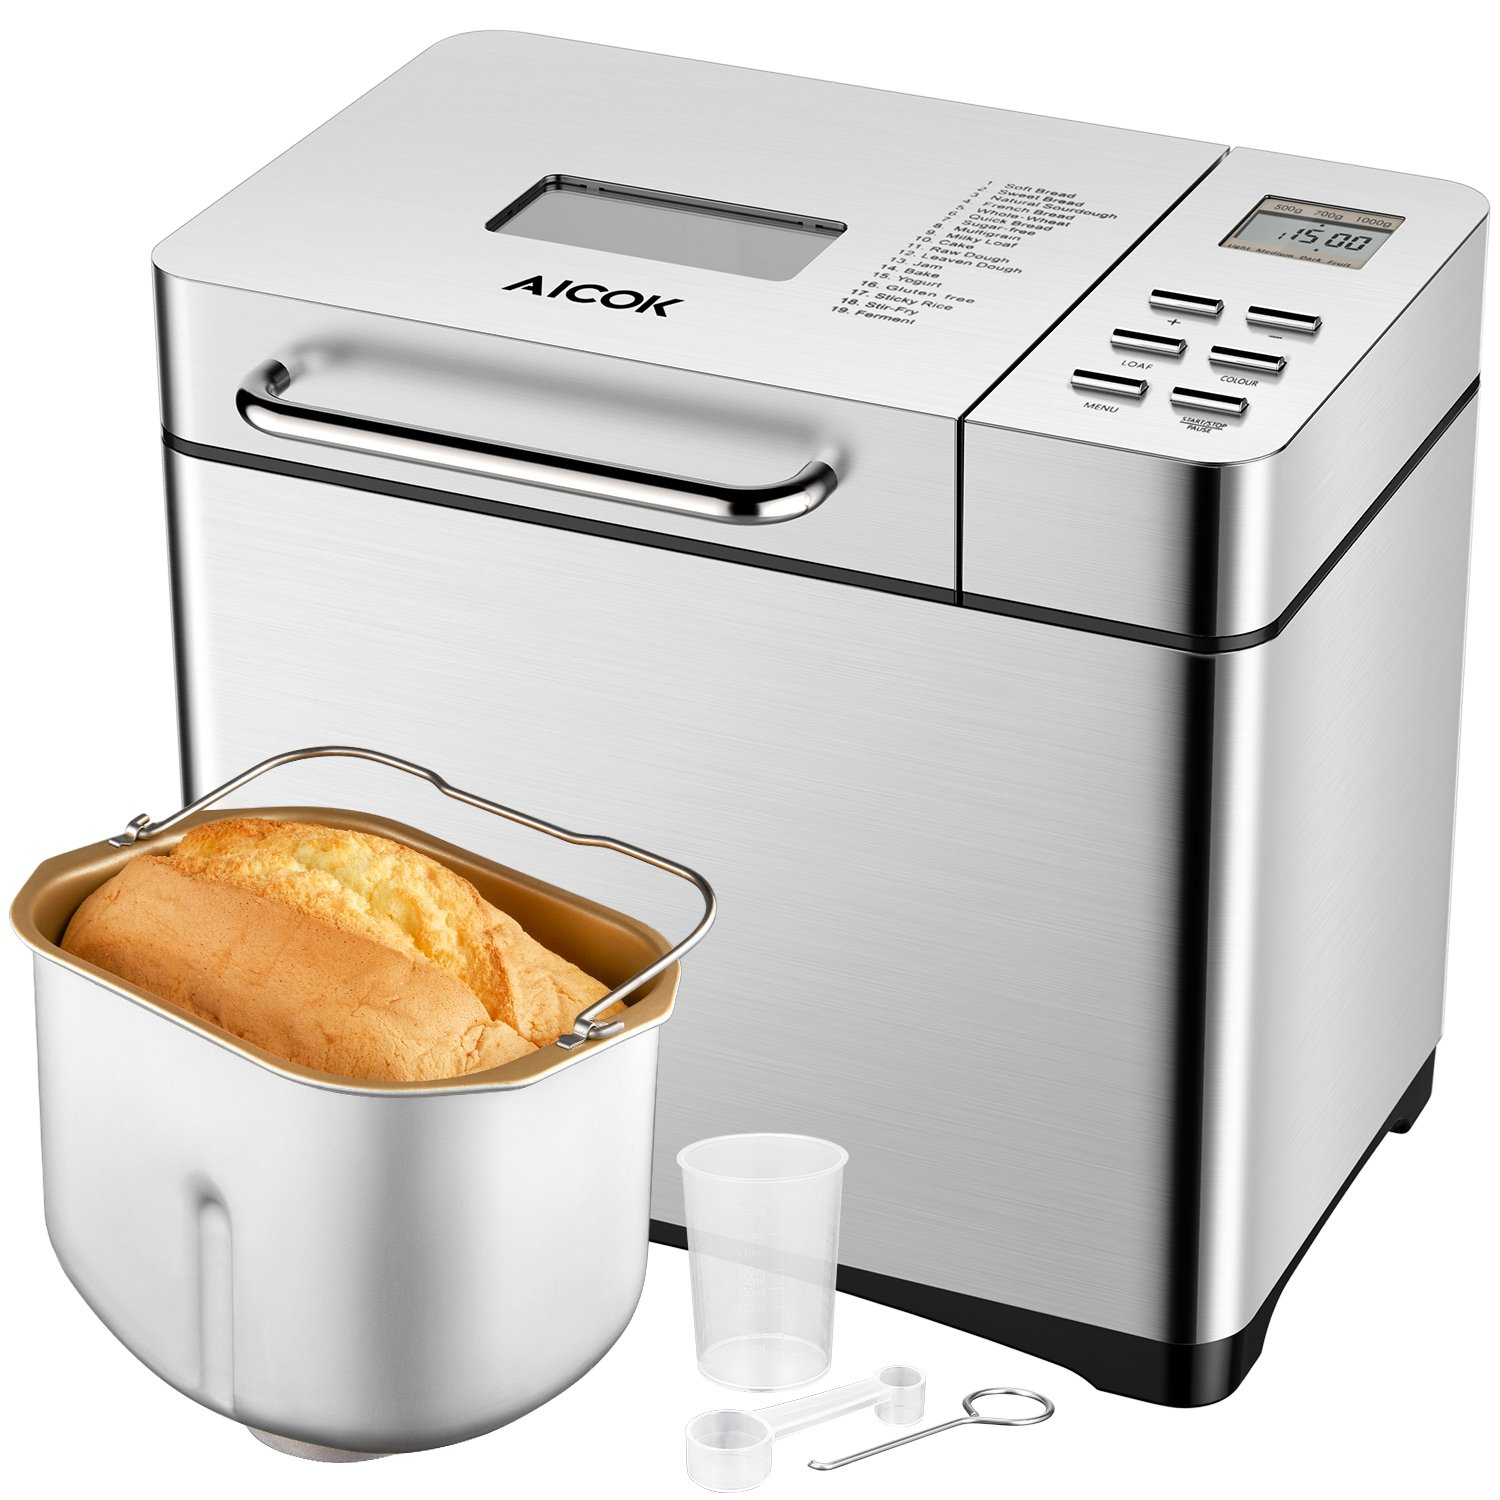 Aicok Programmable Bread maker, 2 Pound Automatic Bread Machine with 19 Programs Cycles, Gluten-Free Setting, FDA Certified, Silver